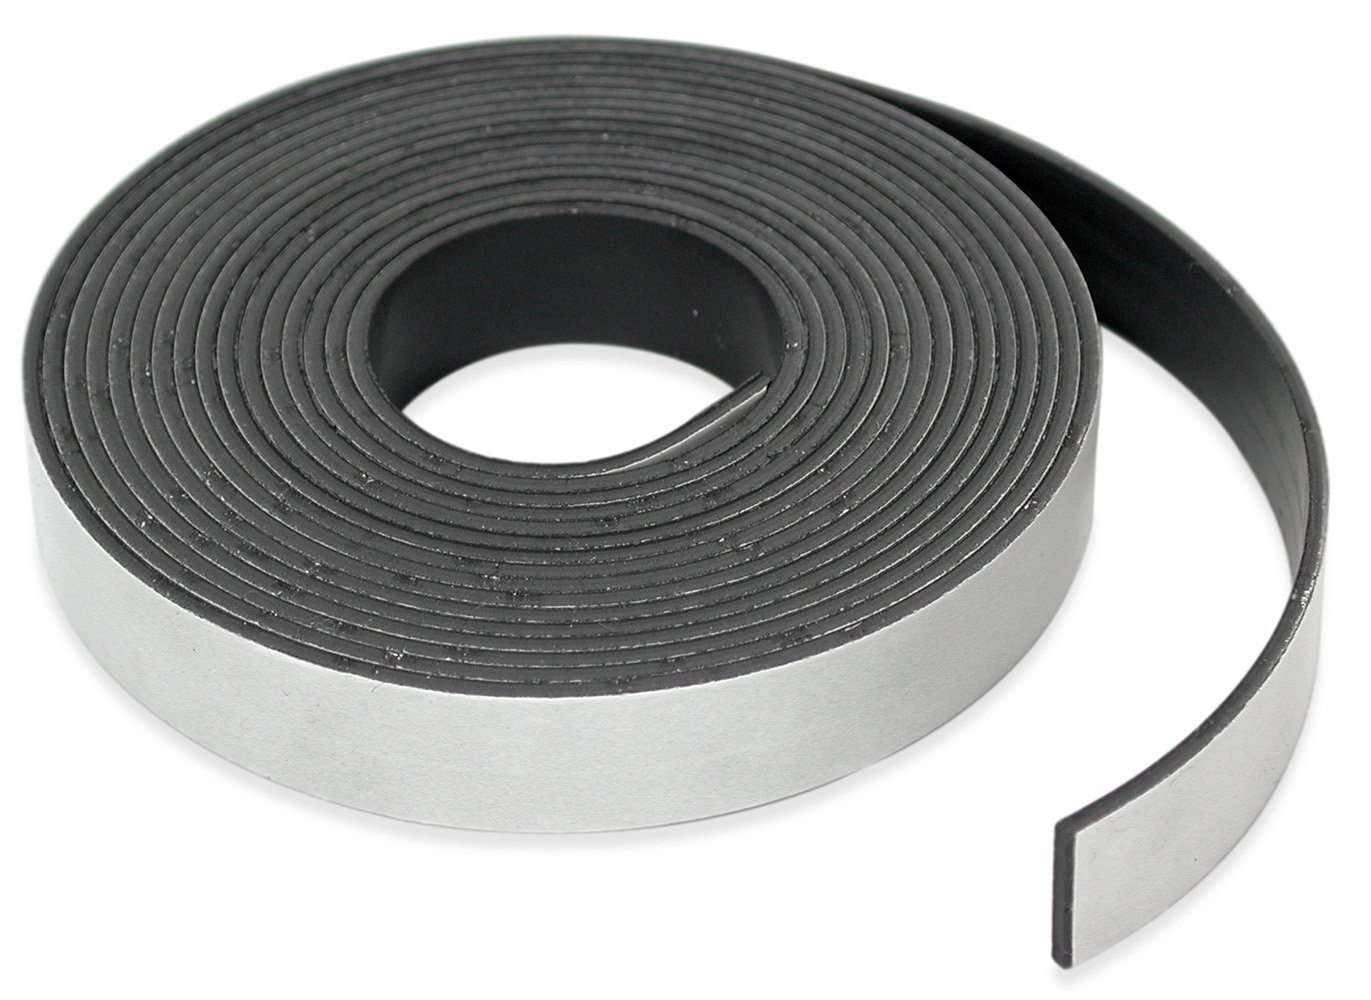 "Master Magnetics Roll-N-Cut Flexible Magnetic Tape Refill - 1/16"" Thick x 1/2"" Wide x 15 feet. (1 roll), 07518"